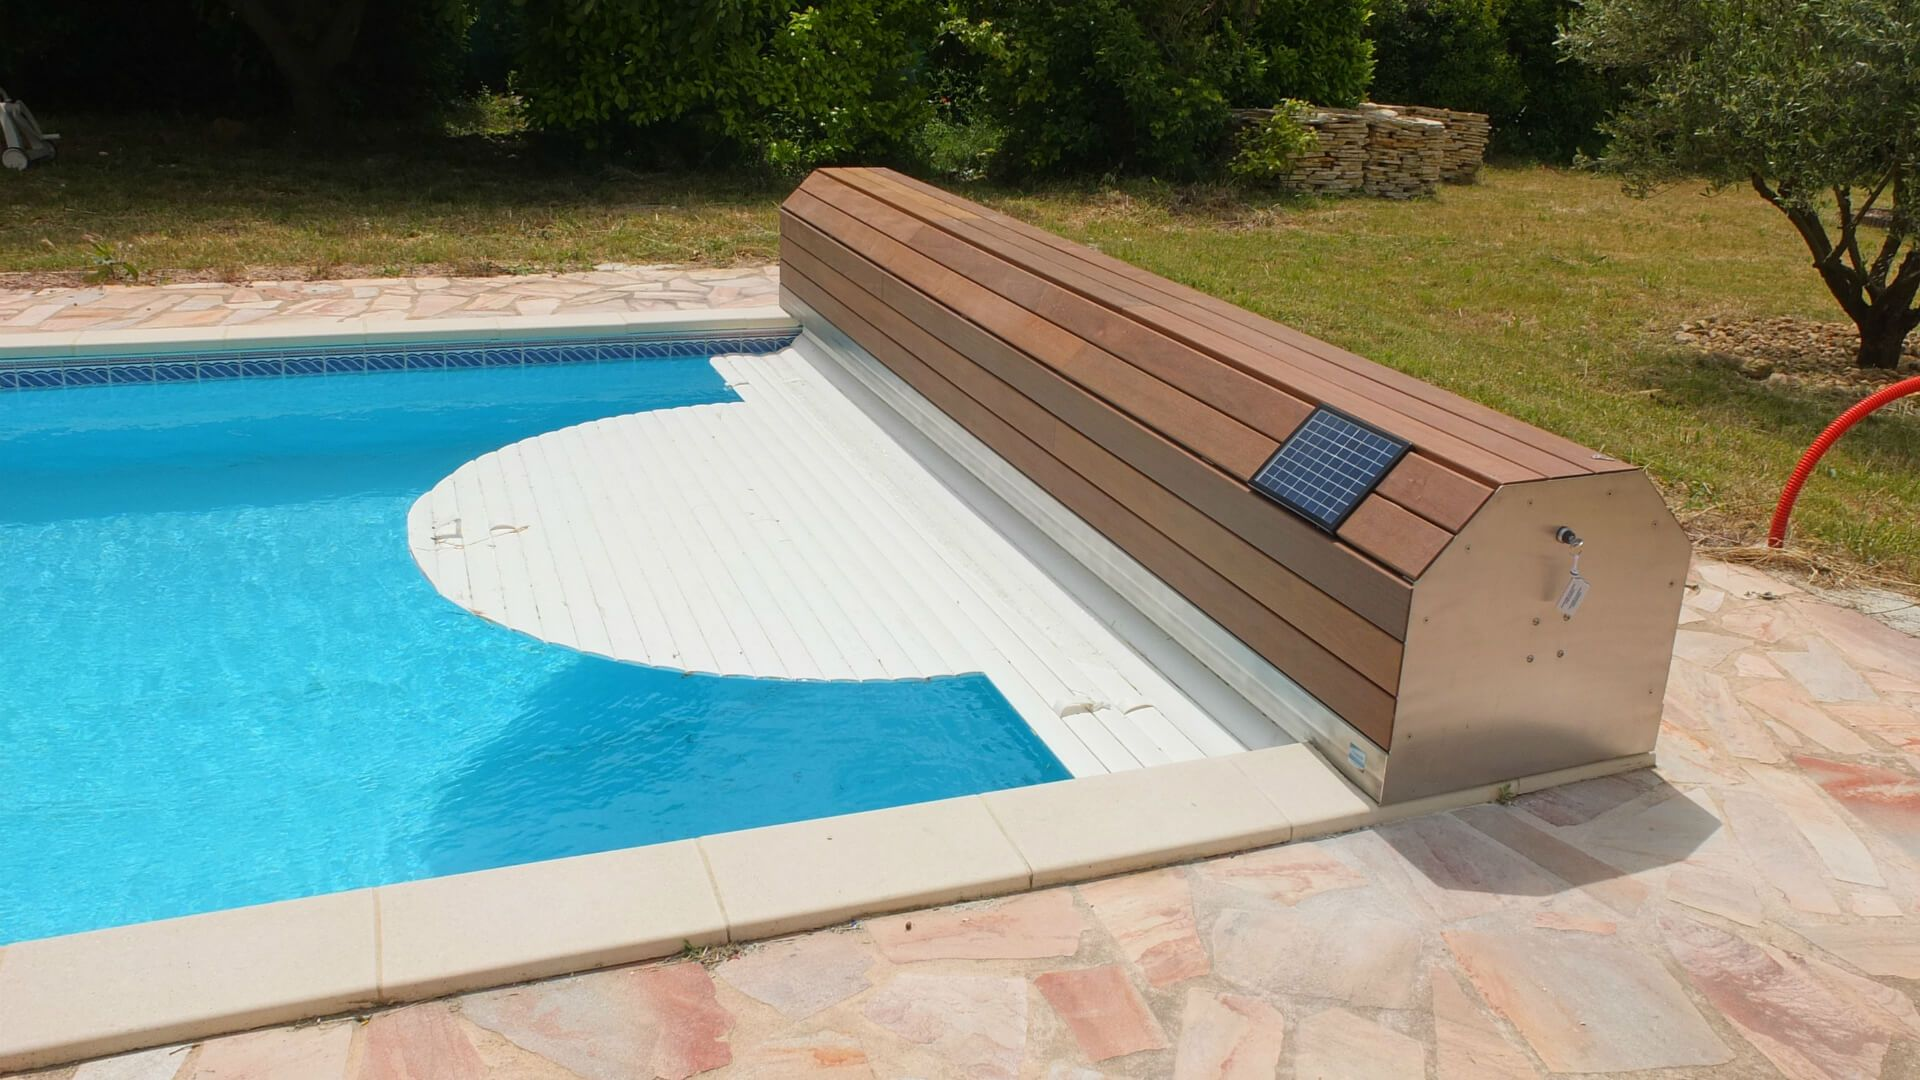 Attache Securite Volet Roulant Piscine Volet Roulant De Piscine Hors Sol Aqualiss Swimming